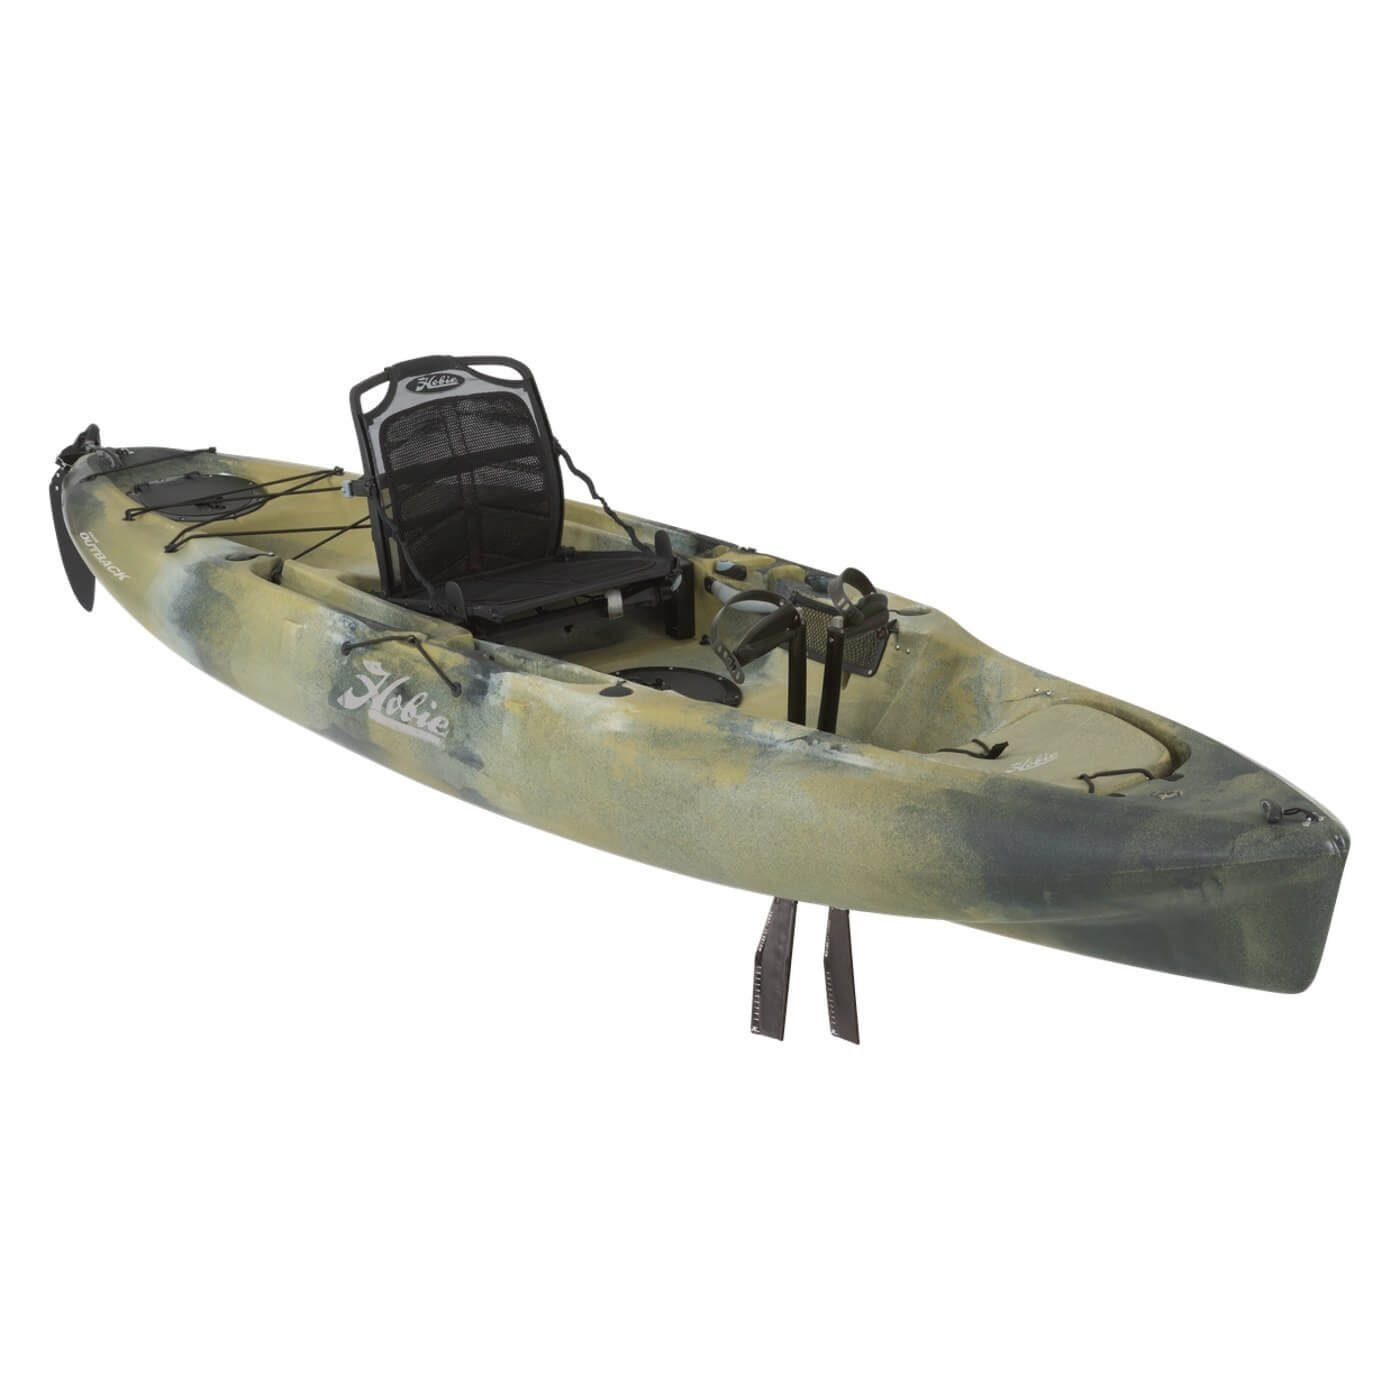 Mirage Outback fishing kayak